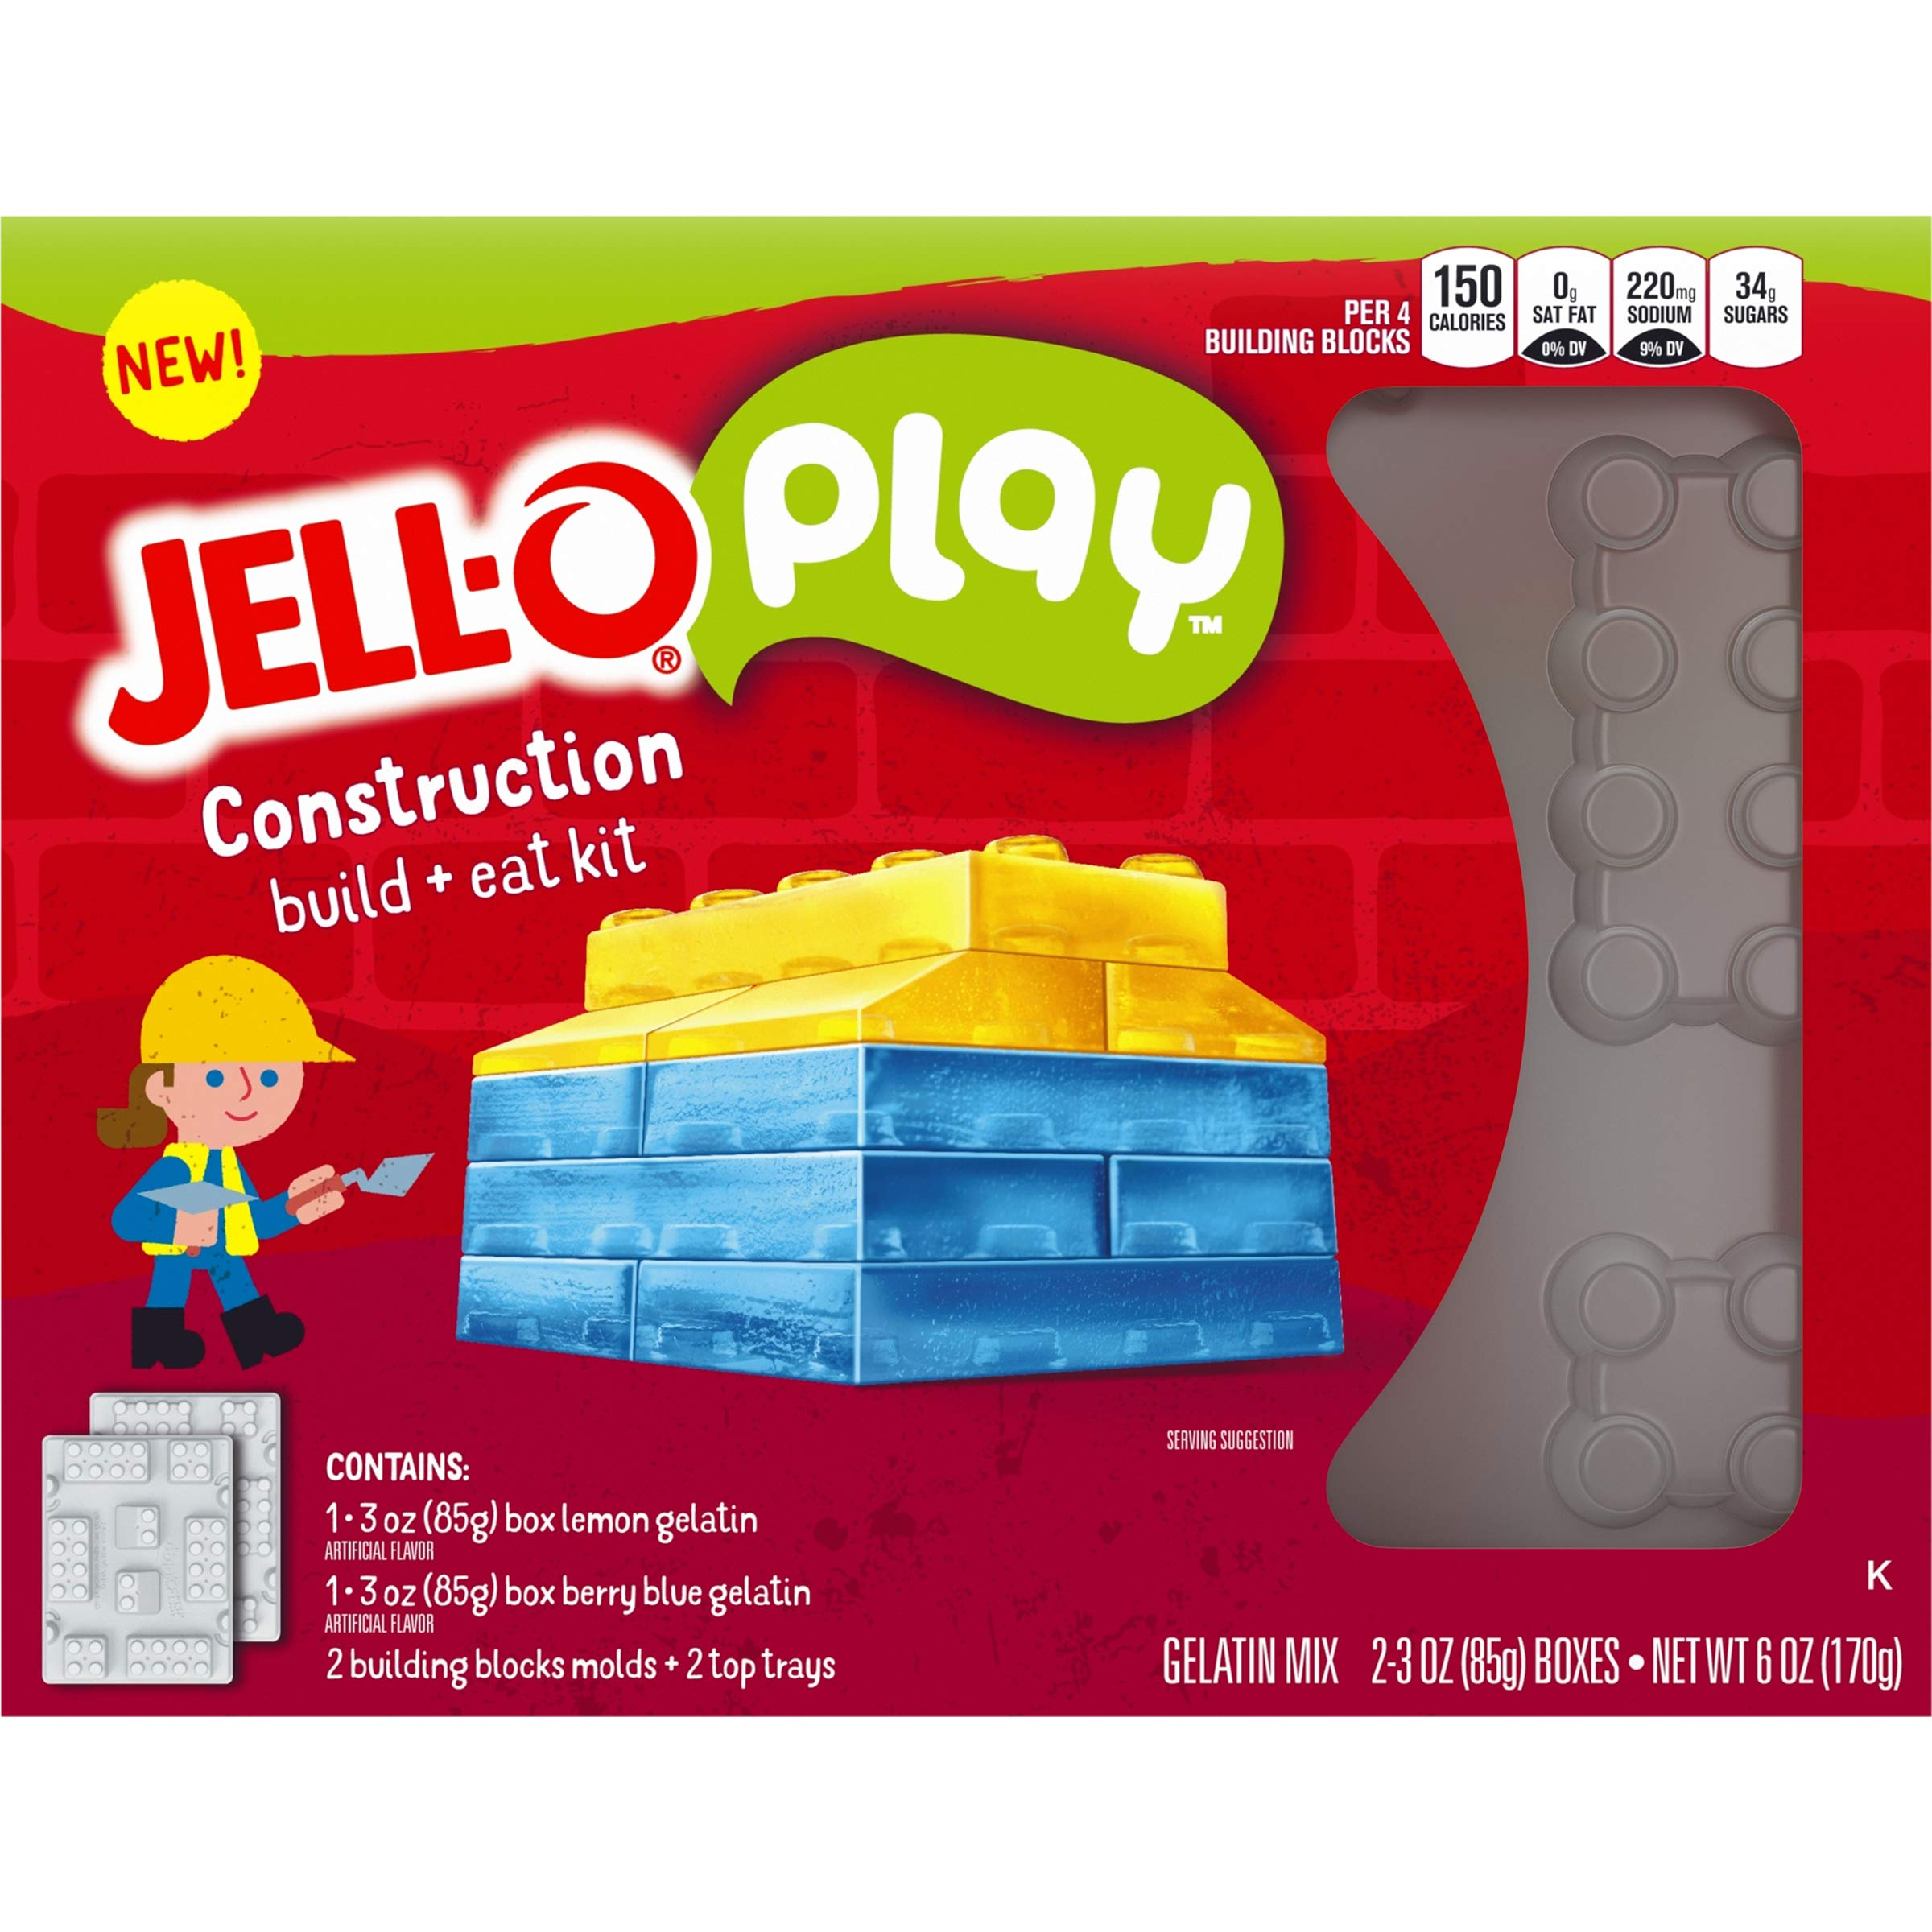 JELL-O Play Construction Build + Eat Gelatin Dessert Kit (6 oz Boxes, Pack of 5) by Jell-O